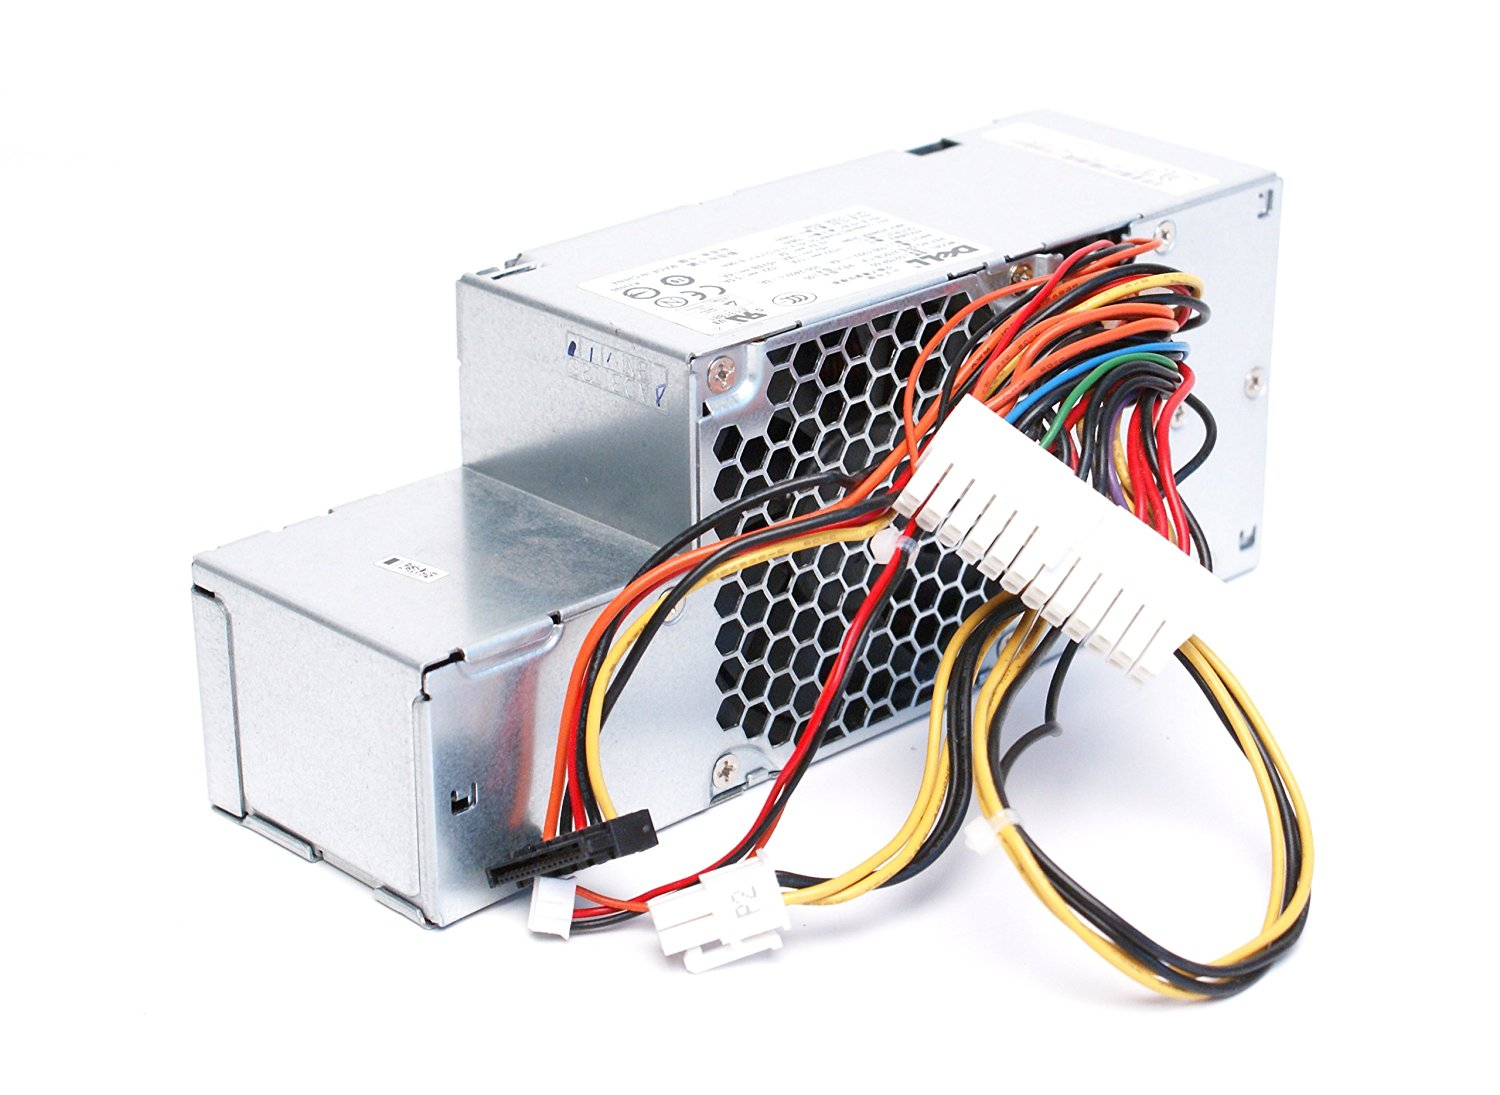 Genuine Dell 275W Watt Power Supply Unit PSU Fits Dell Optiplex GX520, GX620, Dimension 5100C, 5150C Small Form Factor Systems SFF Replaces Part Numbers: K8964, TD570, YD080, N8373, WD861, Replaces Model Numbers: N275P-00, H275P-00, HP-L2757F3P LF, NPS-275BB A